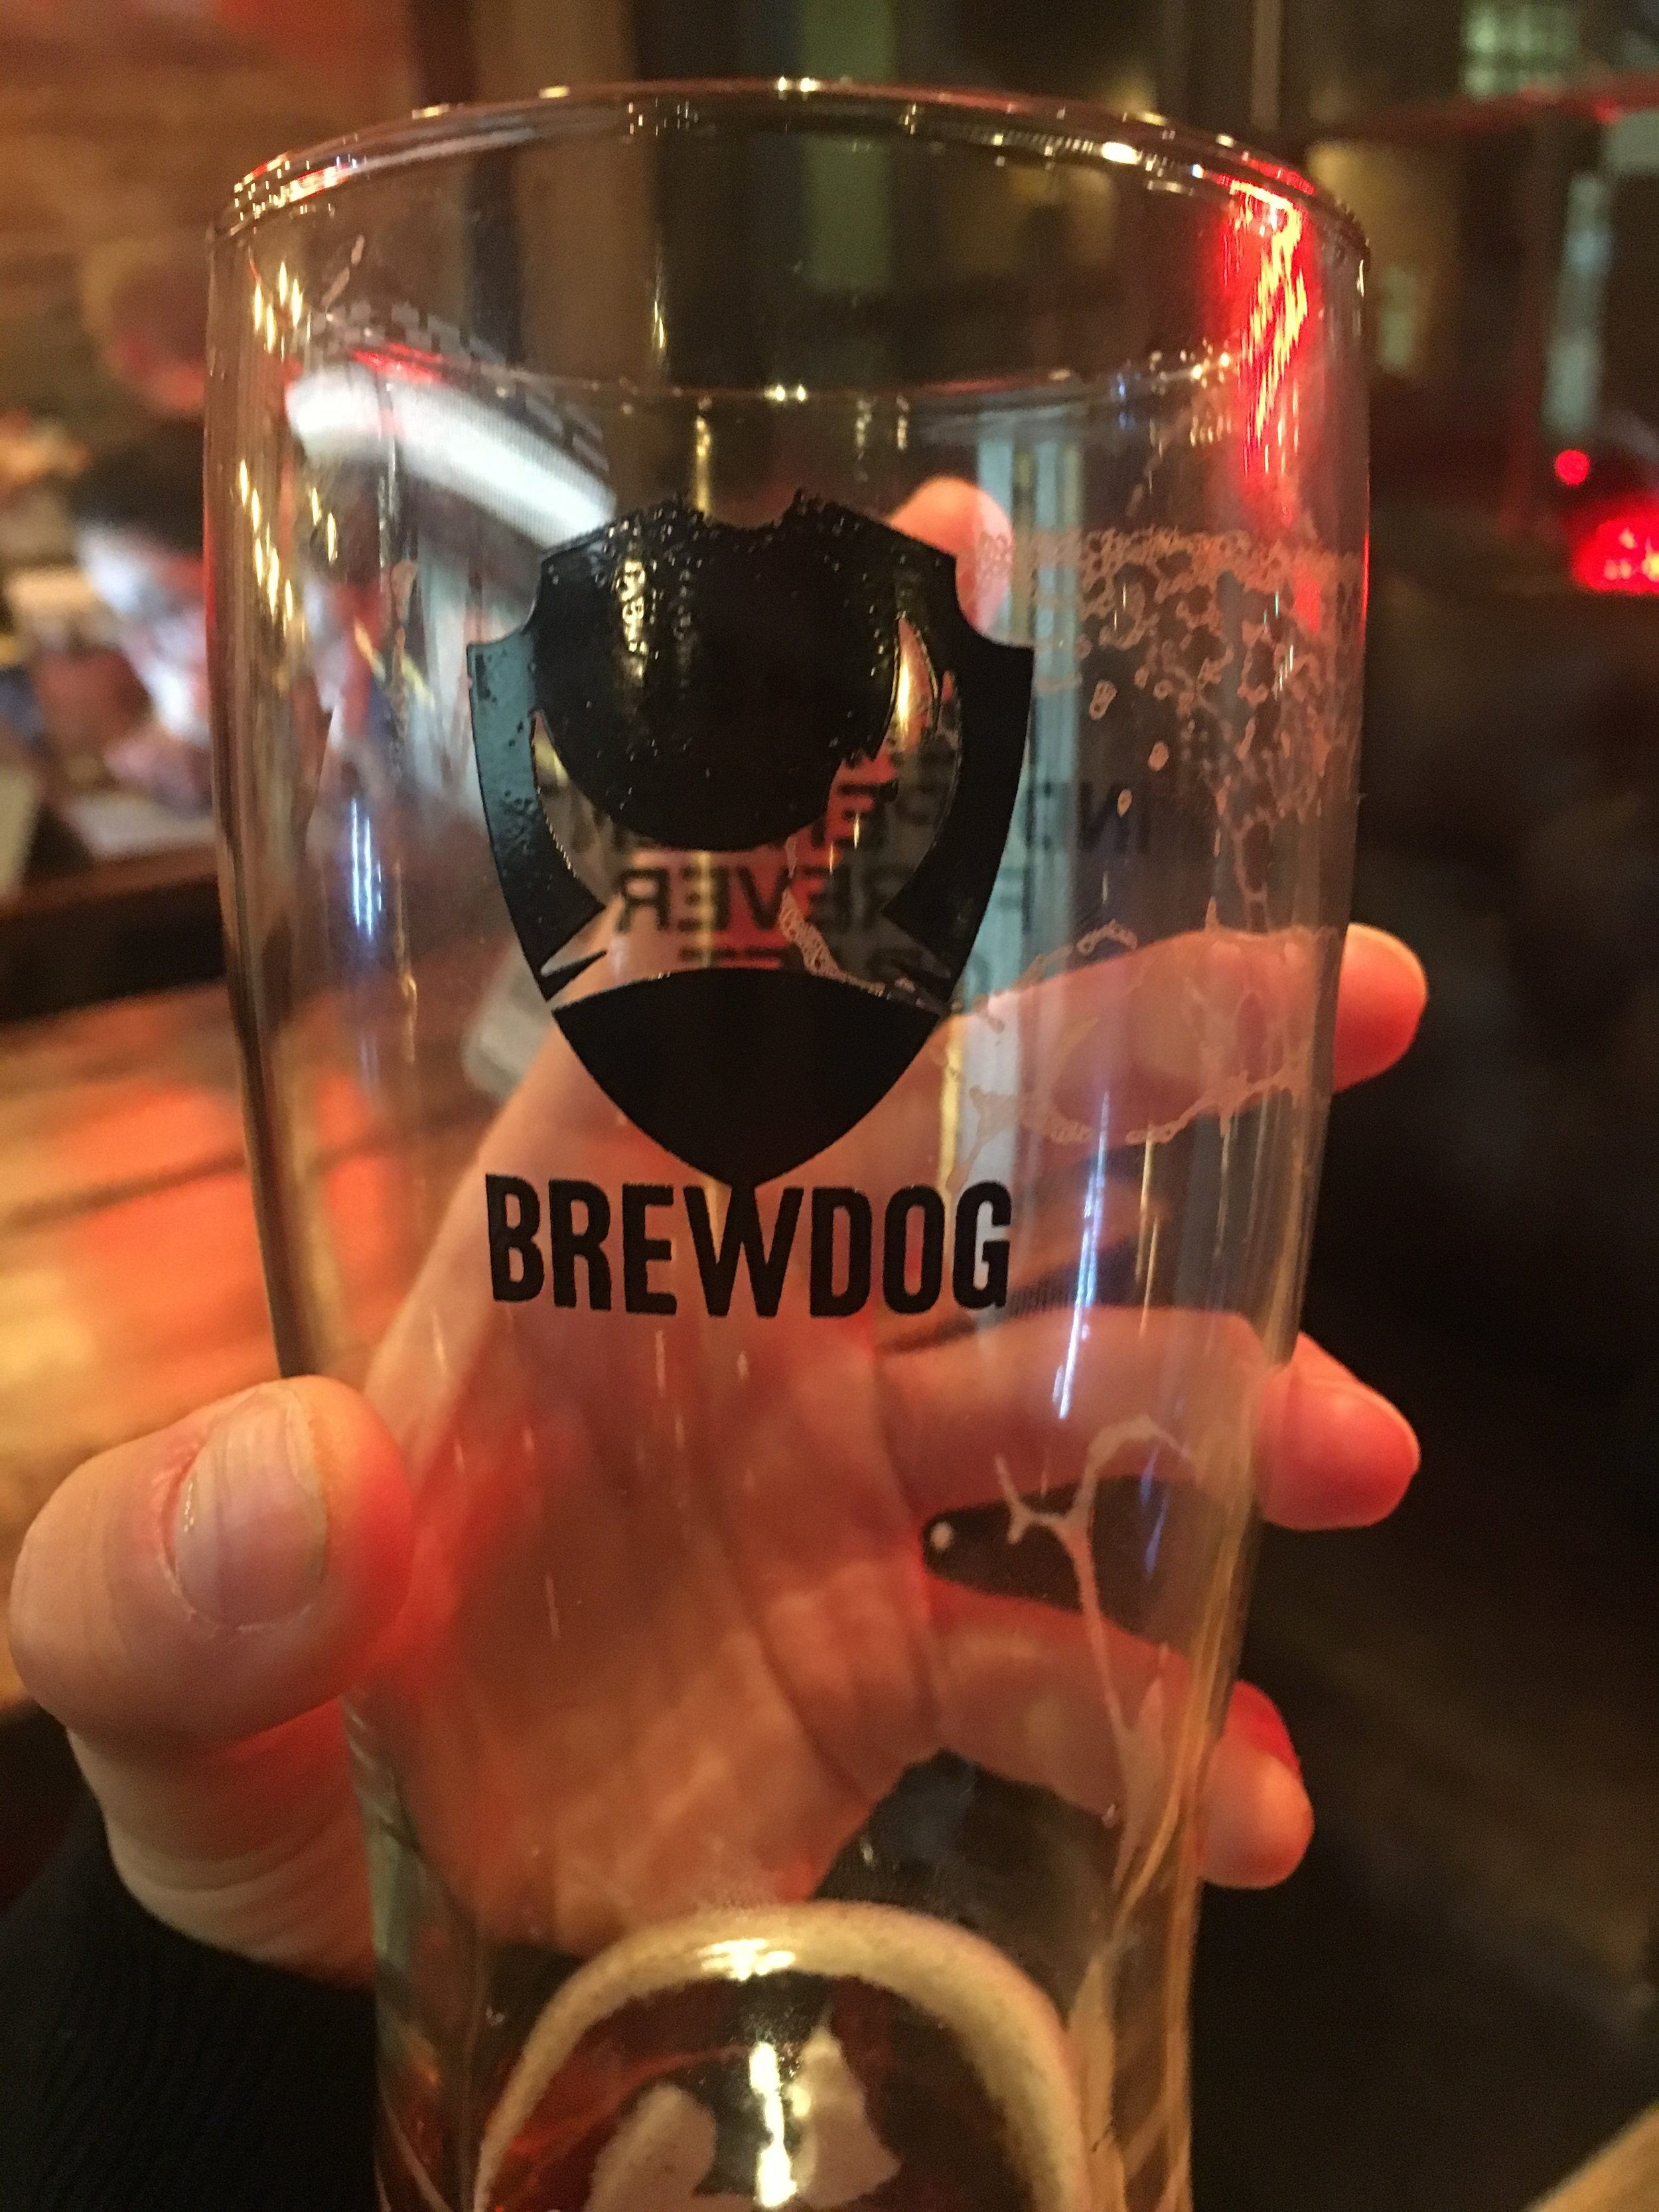 I first drank Brewdog in Italy. This was my first pint in the UK.